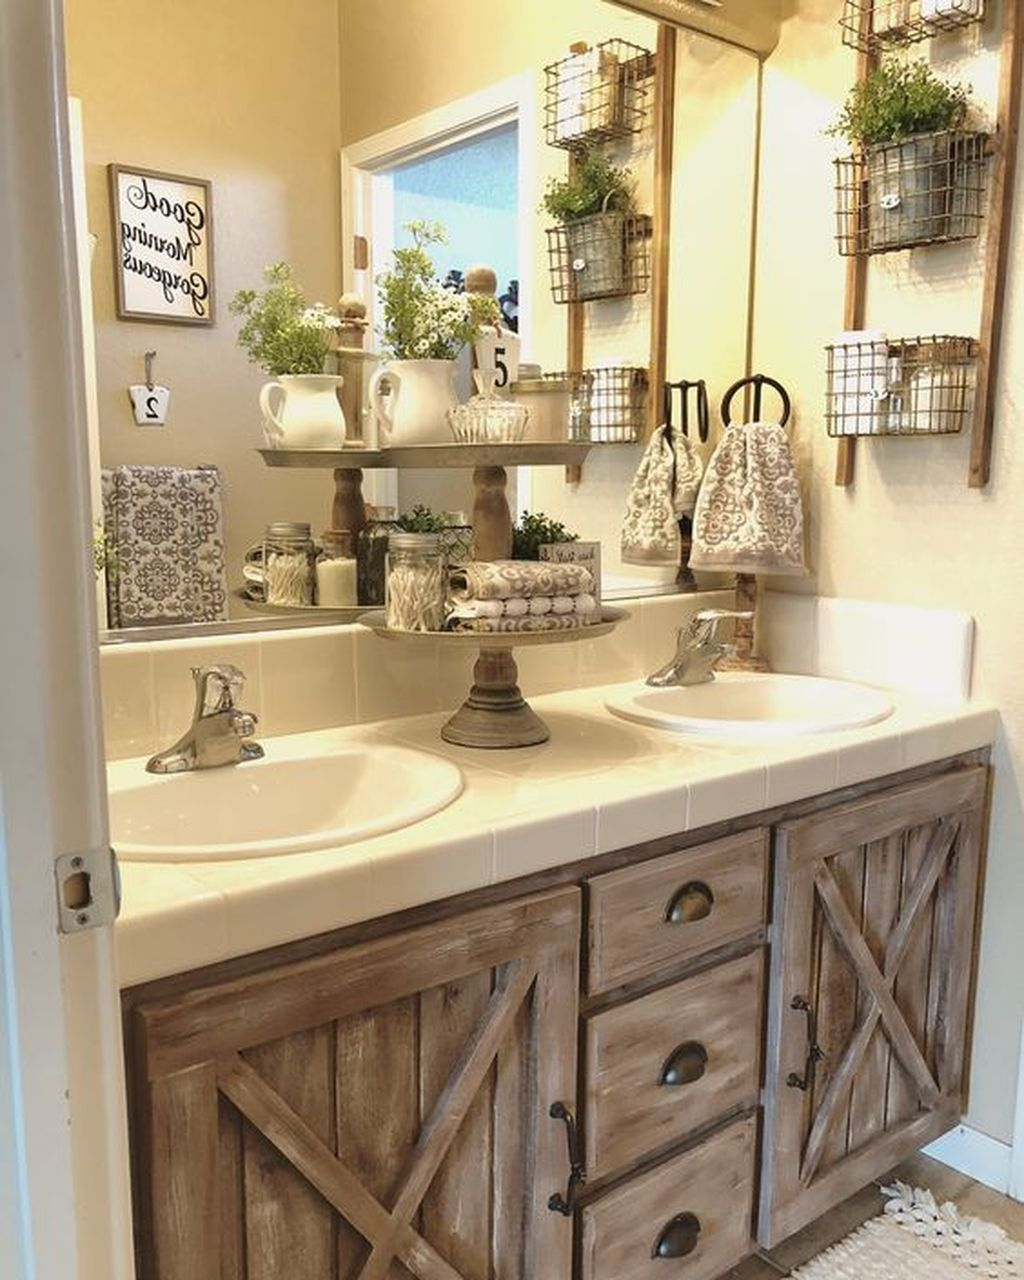 The Farmhouse Bathroom Has A Few Points Greater Than Rustic And Also Farm Inspired By Numero Beautiful Bathroom Decor Farmhouse Bathroom Decor Rustic Bathrooms